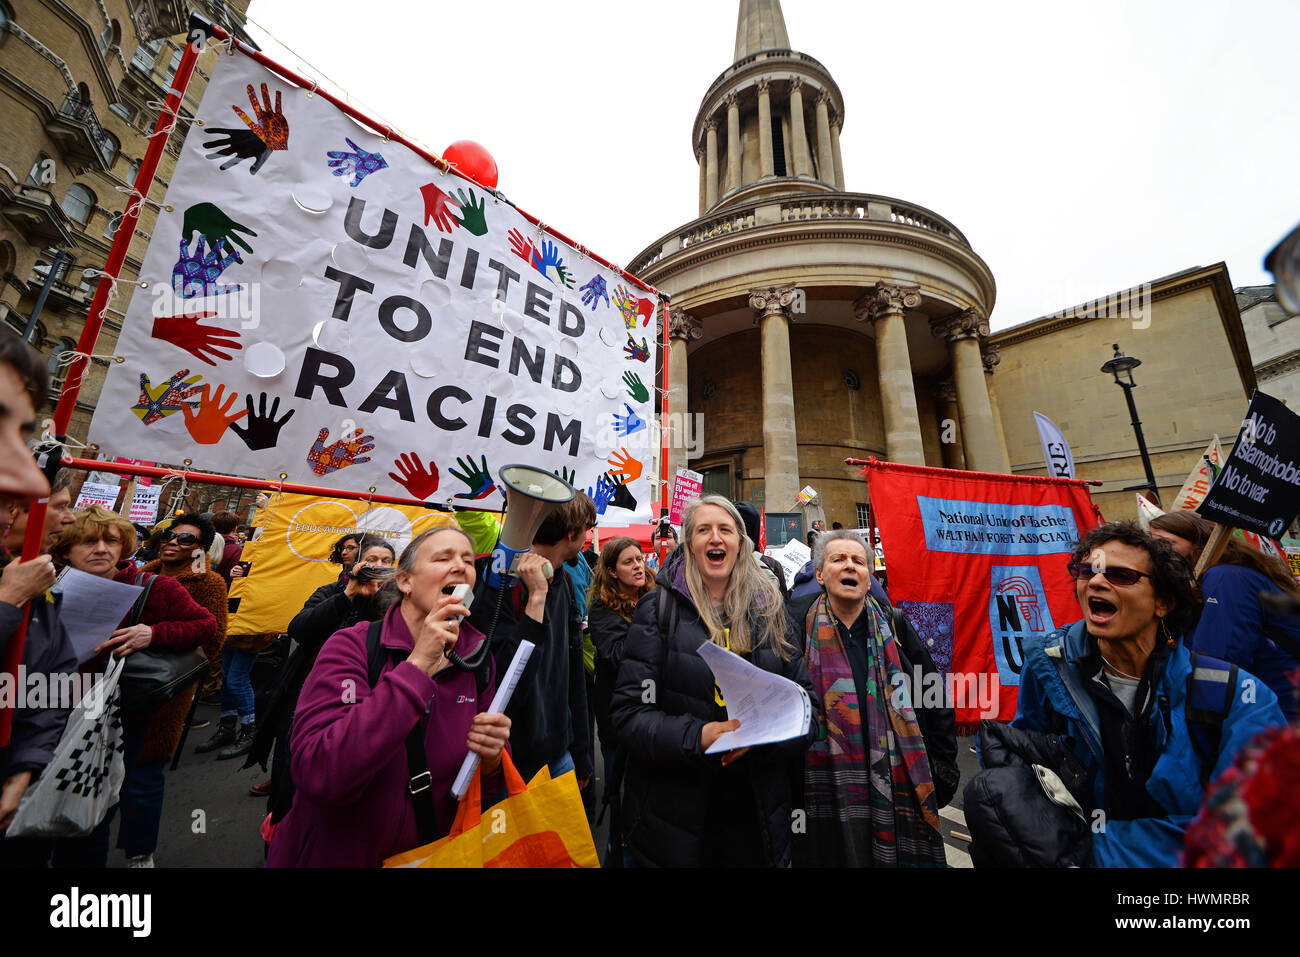 A demonstration took place in London on United Nations Anti Racism Day starting at Portland Place - Stock Image